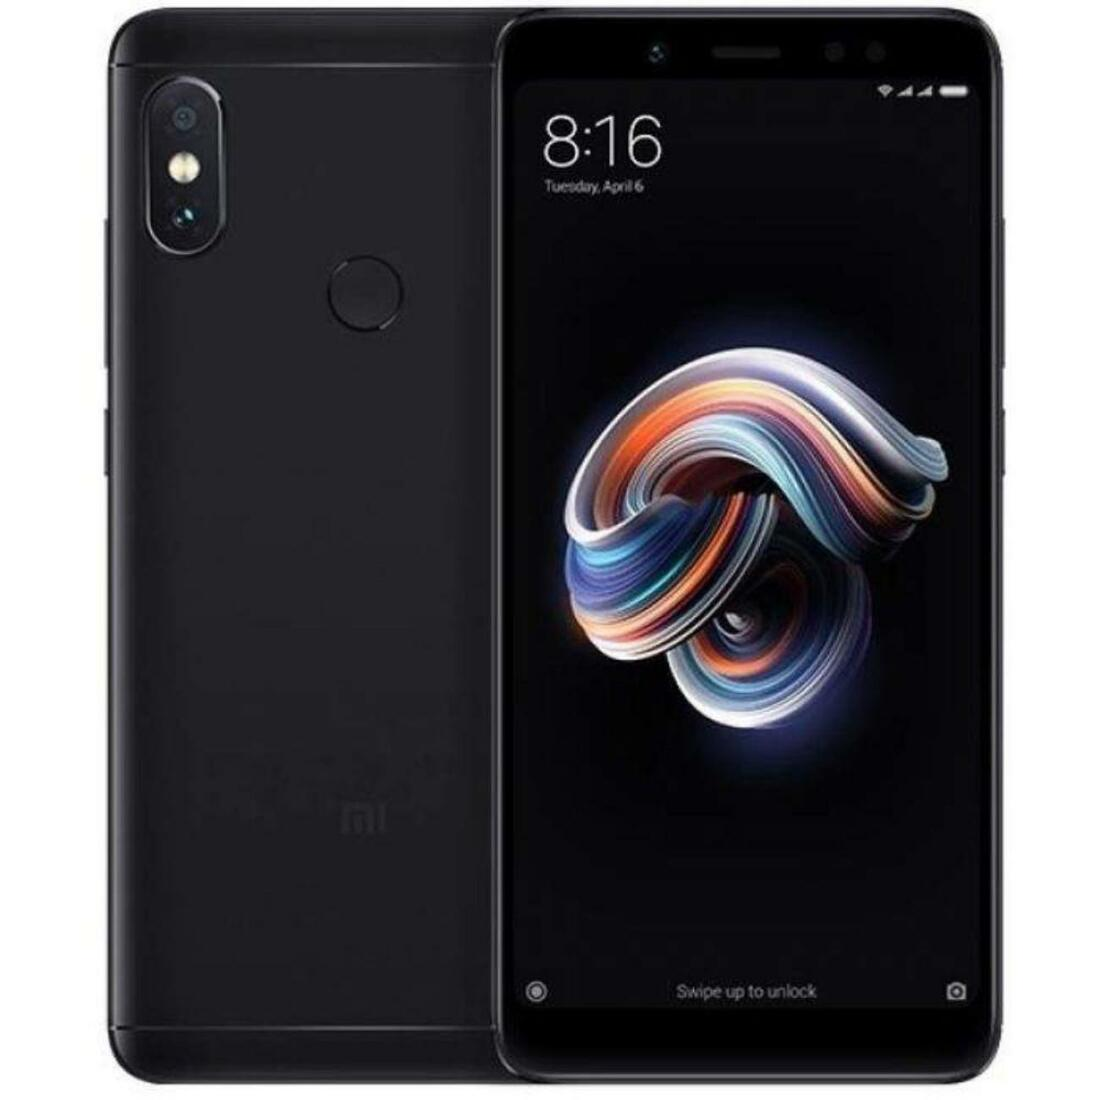 Smartphone Redmi S2 3GB Ram Tela 5.99 32GB Camera dupla 12+5MP - Preto